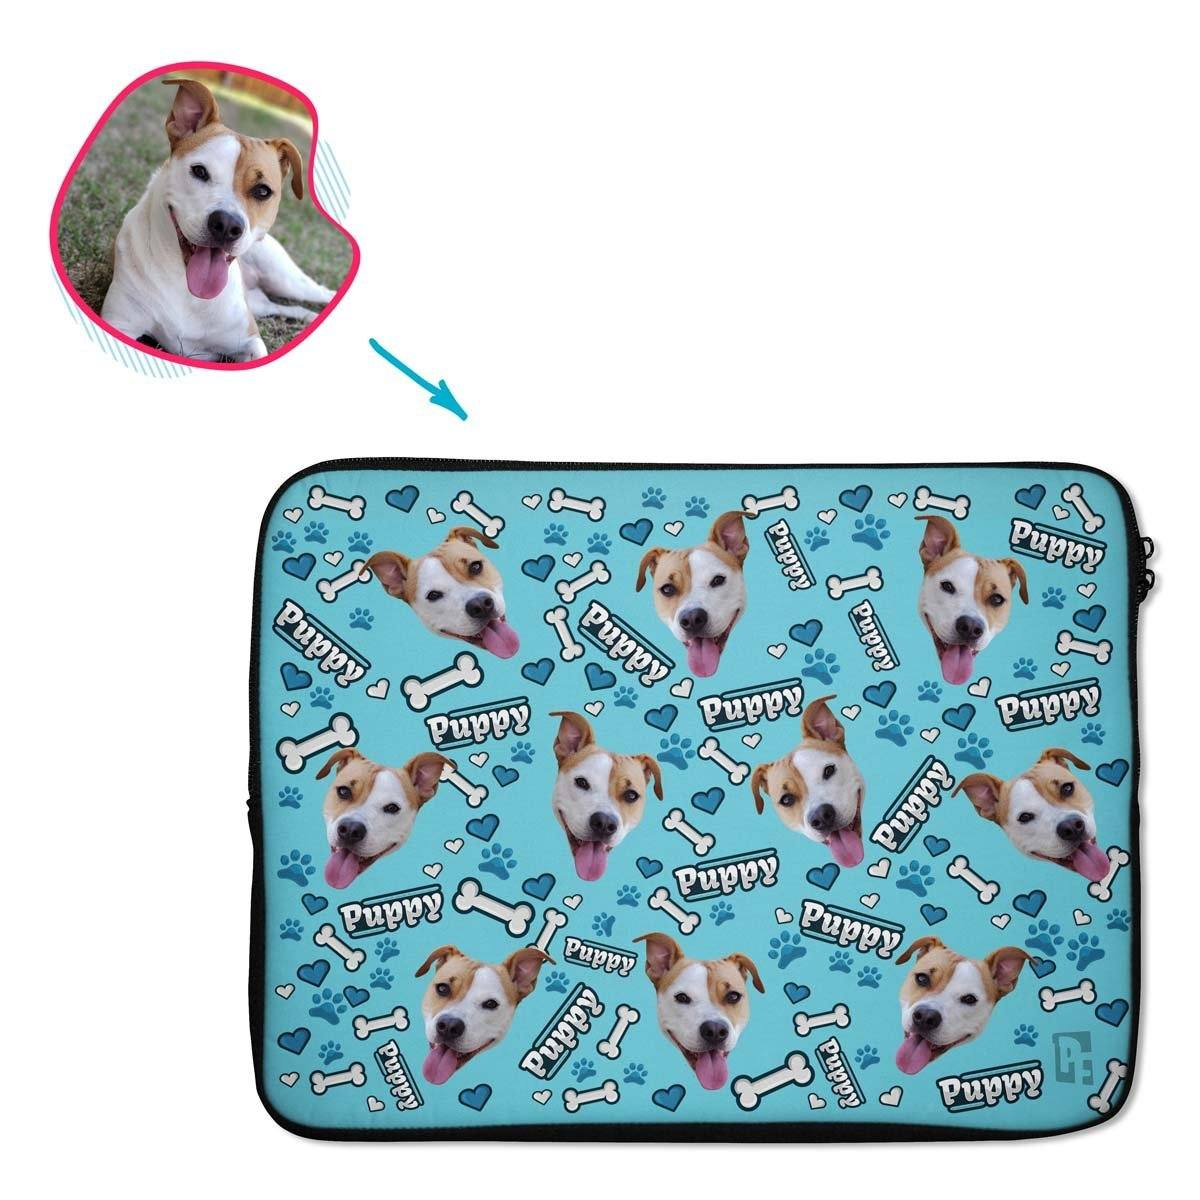 blue Puppy laptop sleeve personalized with photo of face printed on them